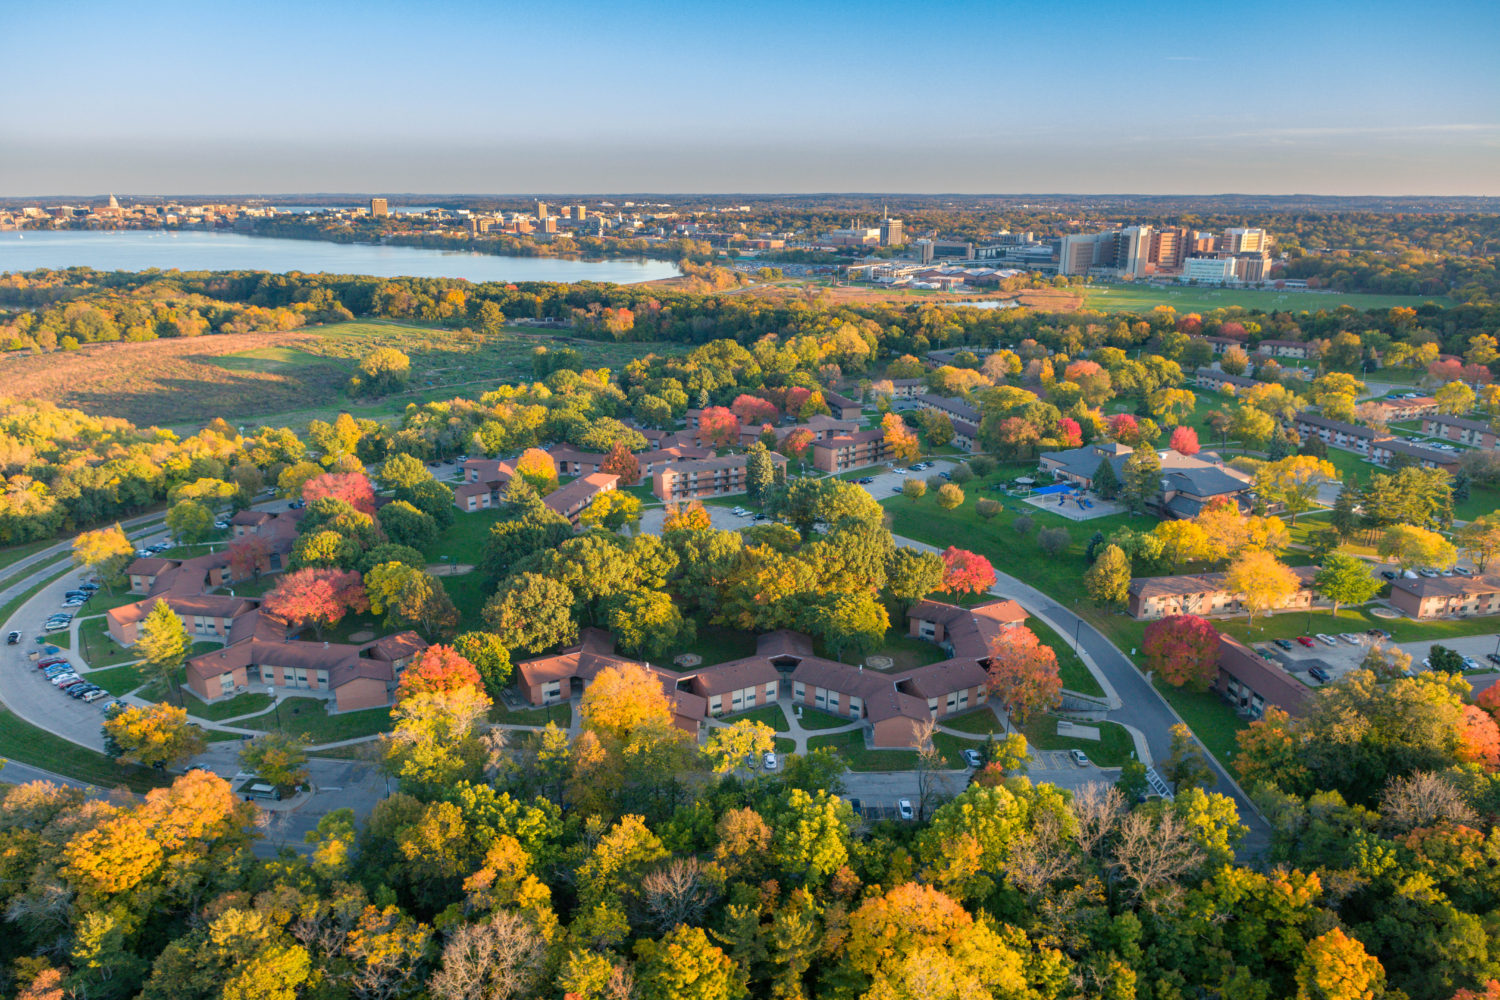 An aerial view of the Eagle Heights Neighborhood in University Apartments at sunset in fall